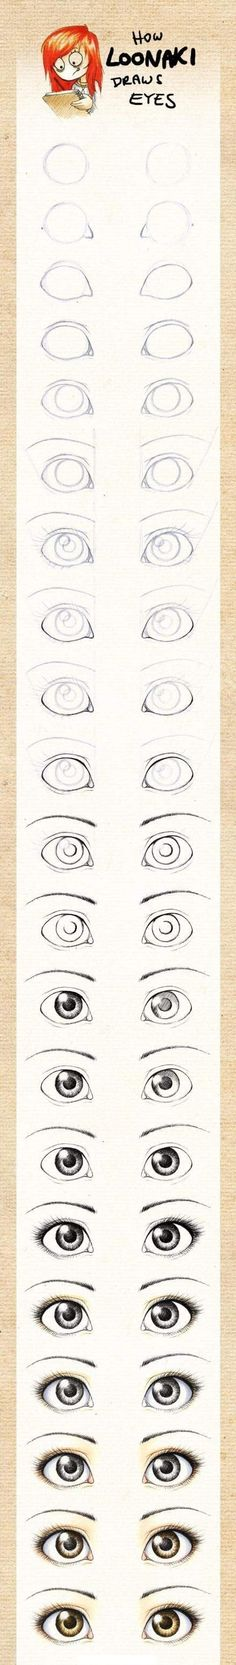 How to draw eyes- I used this and even me who can't draw something good to save my life got a lot of complements on my drawing...